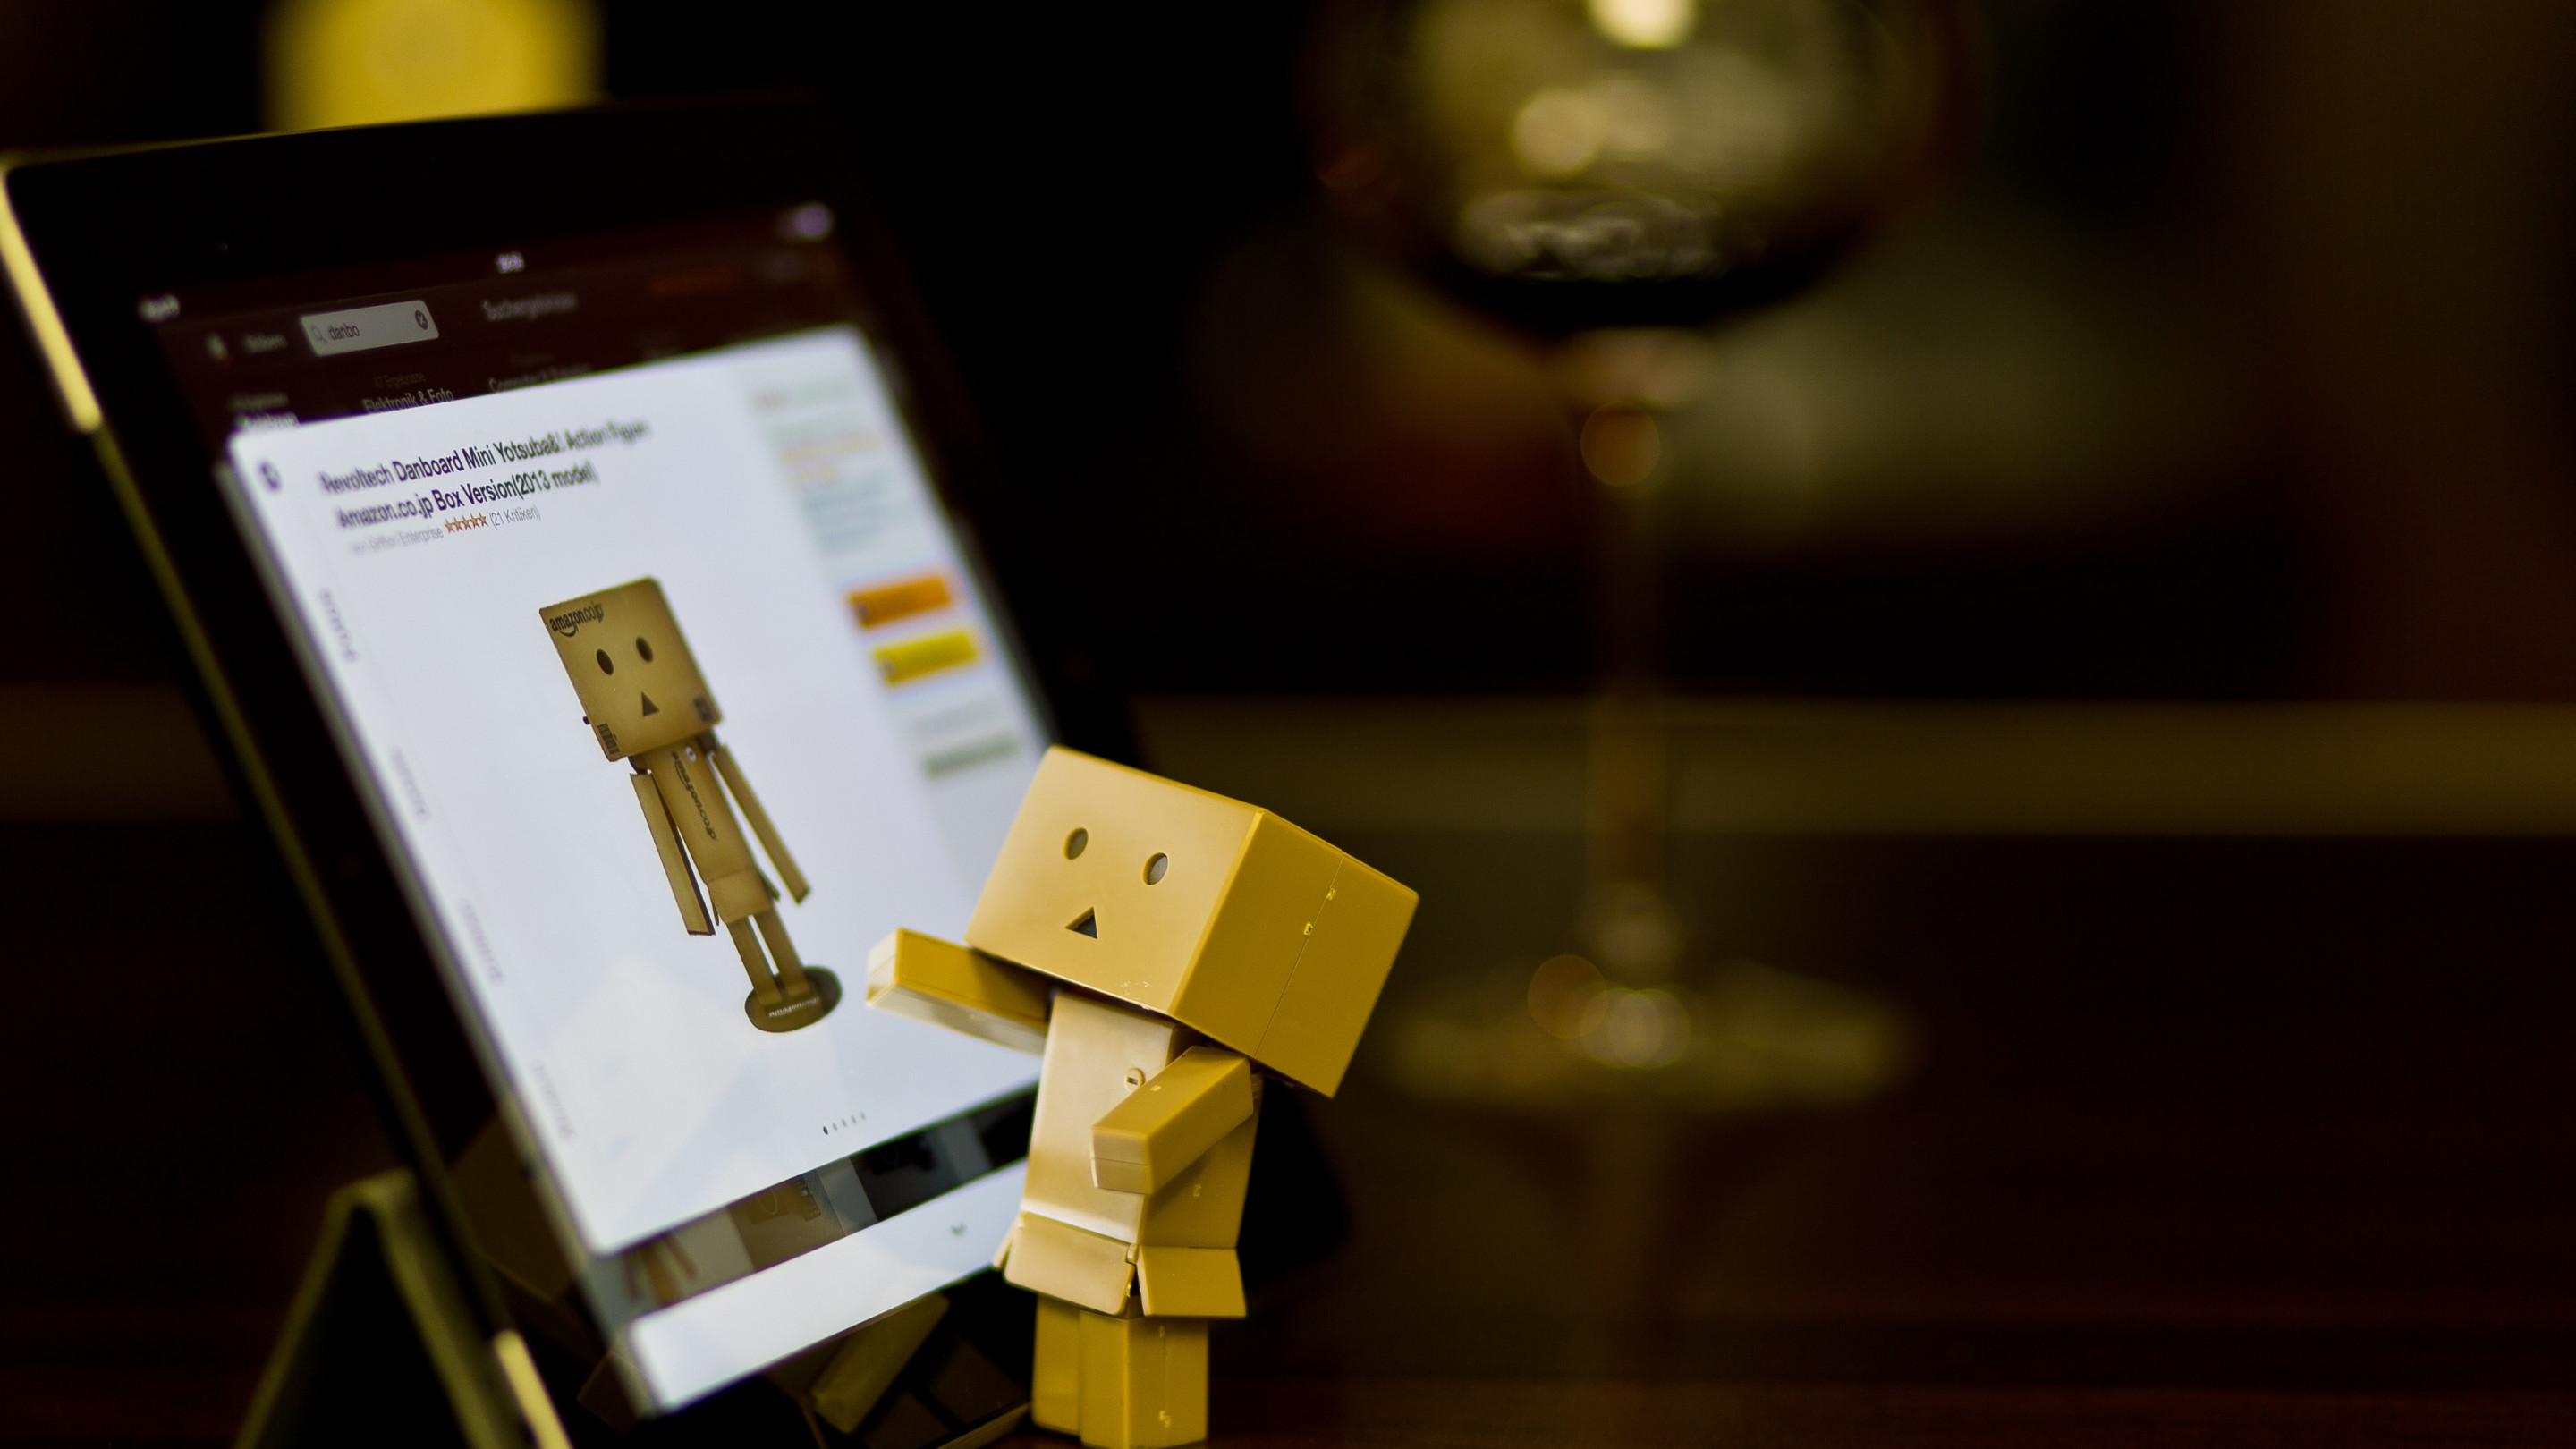 Danbo with tablet | 2880x1620 wallpaper